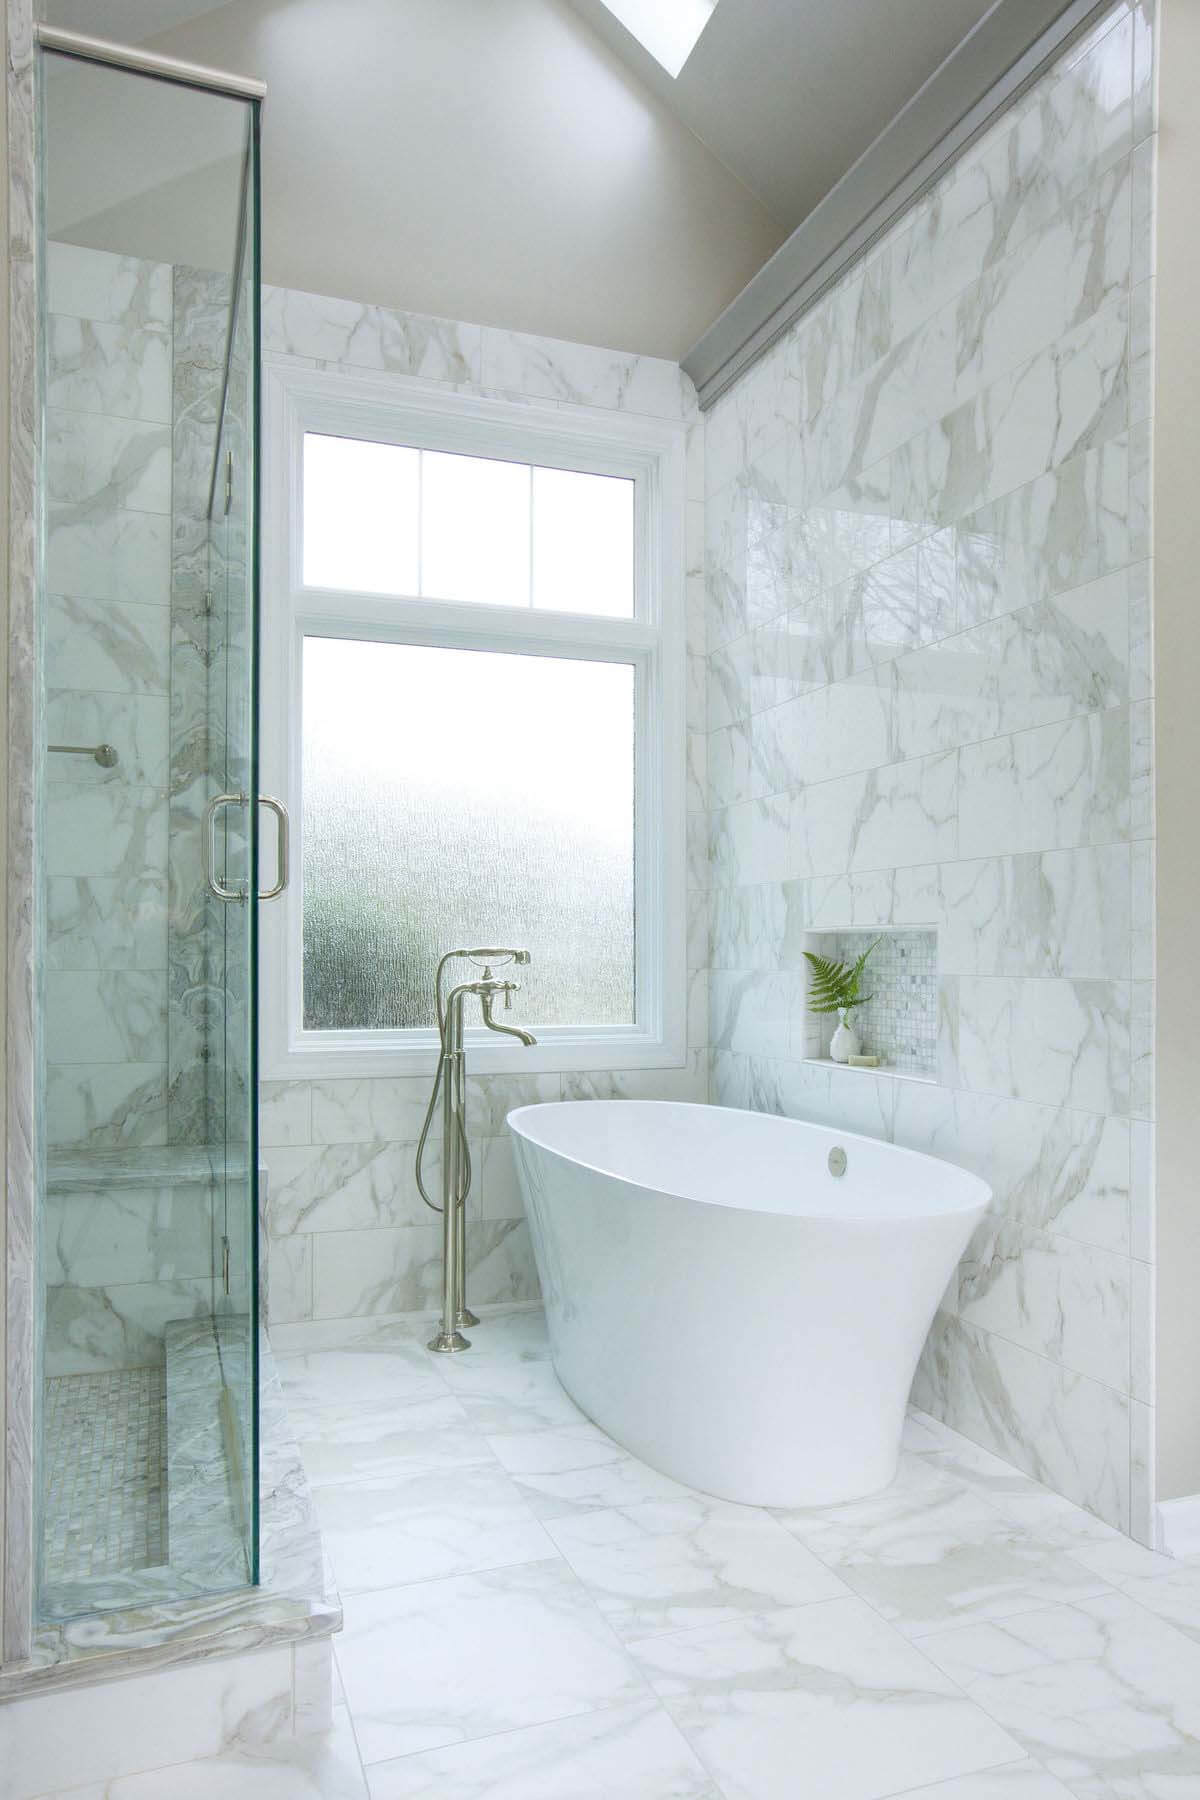 The Secrets Of Successful Bathroom Design Styleblueprint